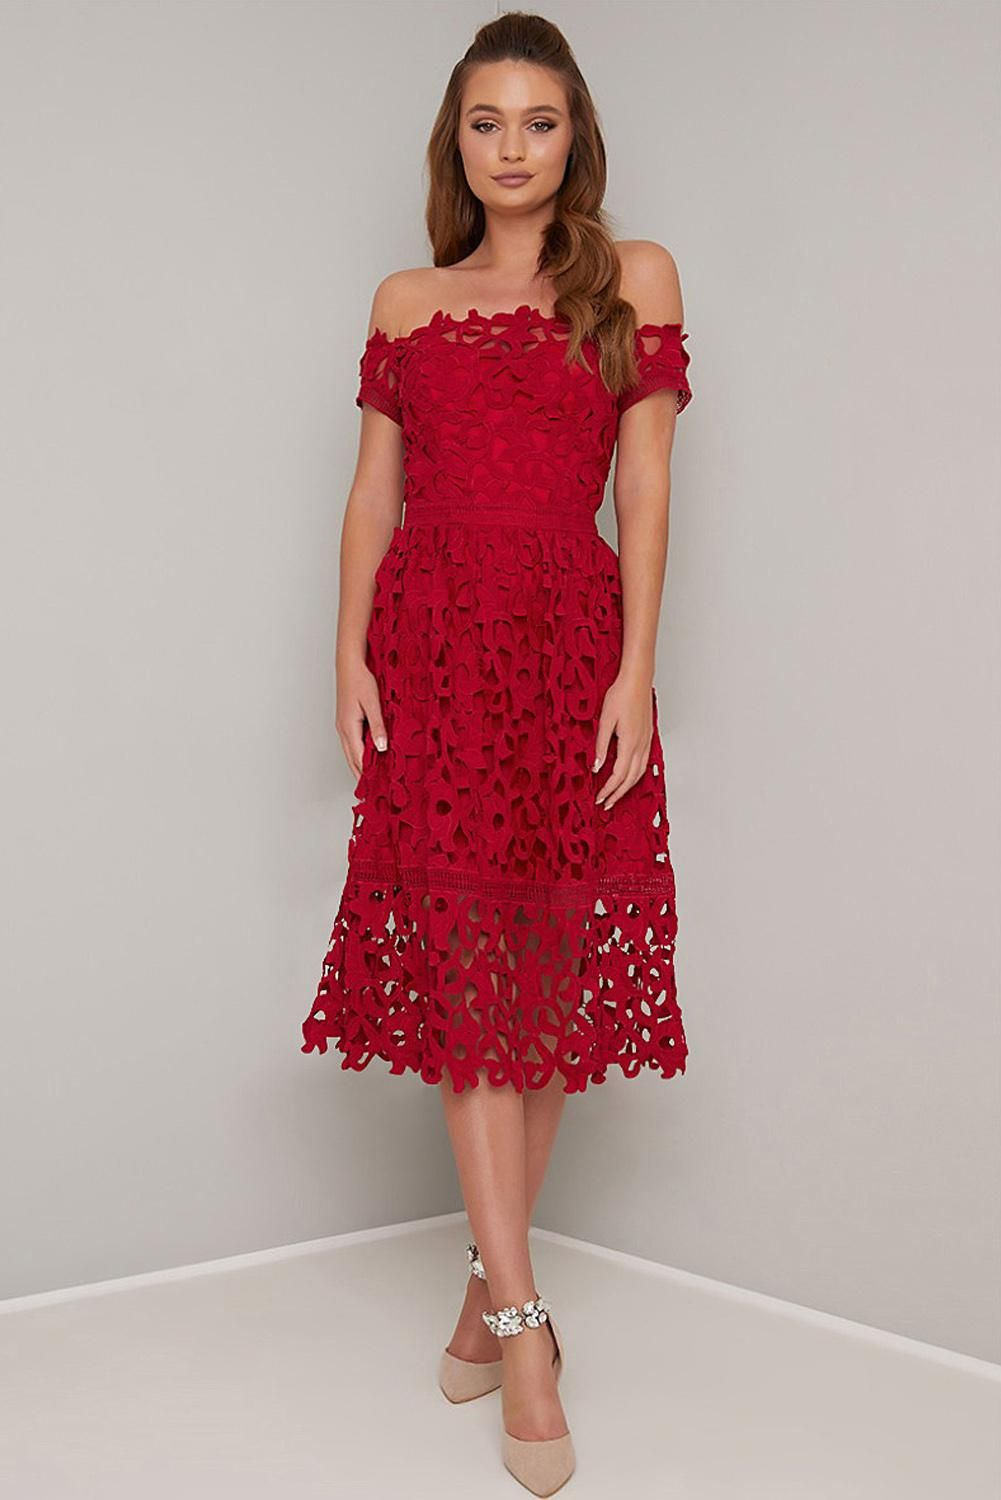 Red Patchwork Off Hollow Out Shoulder Short Sleeve Regular Crochet Party Dress In 37 98 Crochet Party Dresses Prom Midi Dress Dresses